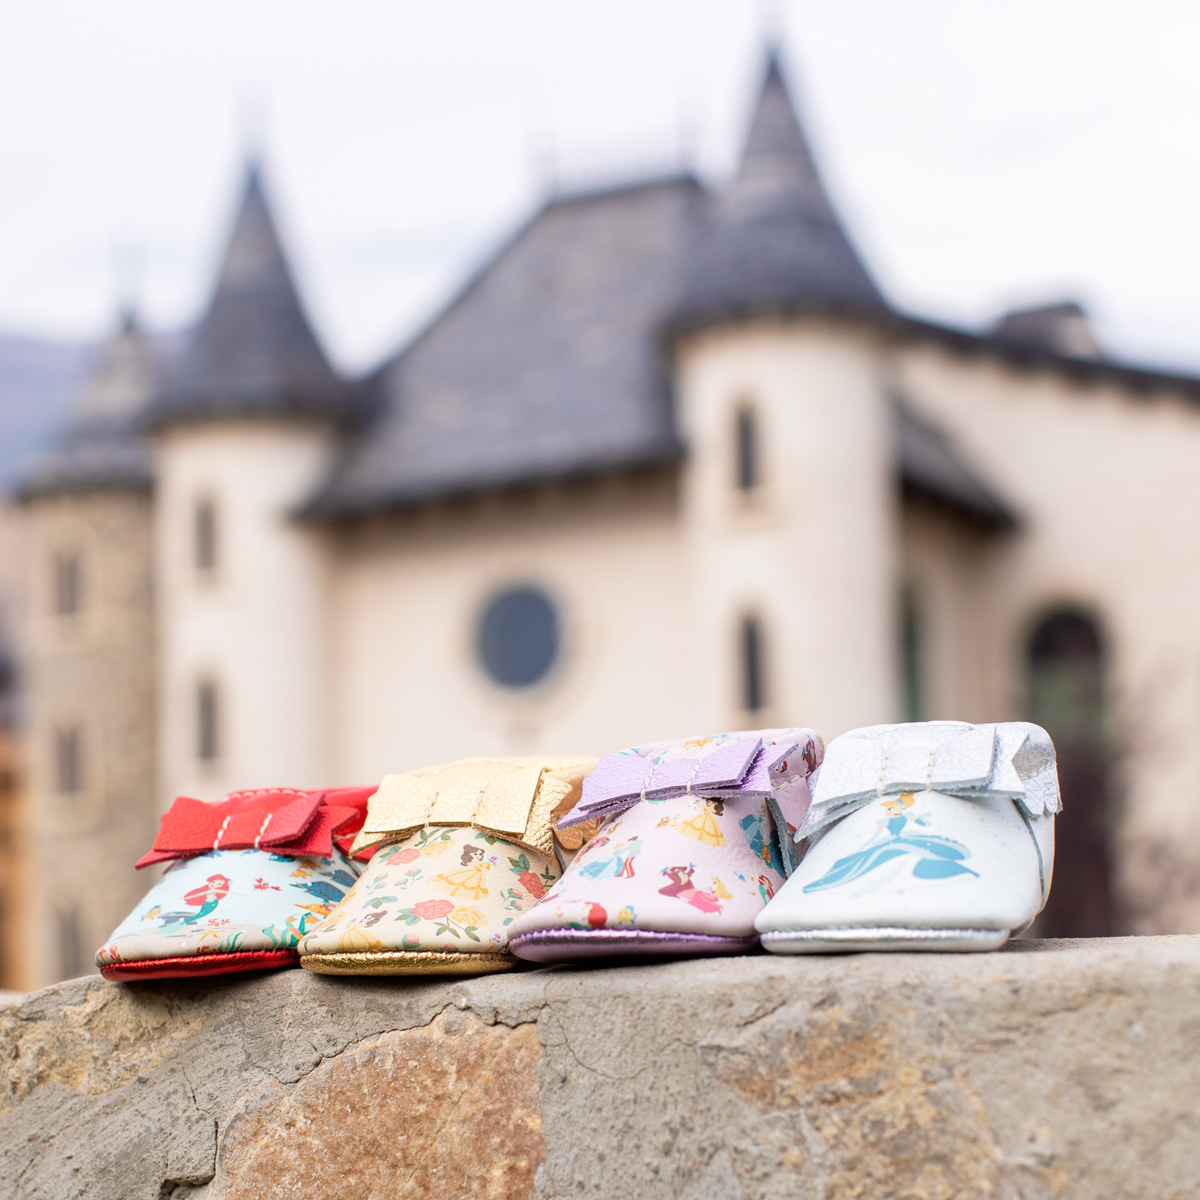 Every Little Princess Needs a Pair of Shoes From Freshly Picked's Disney-Themed Moccasin Collection